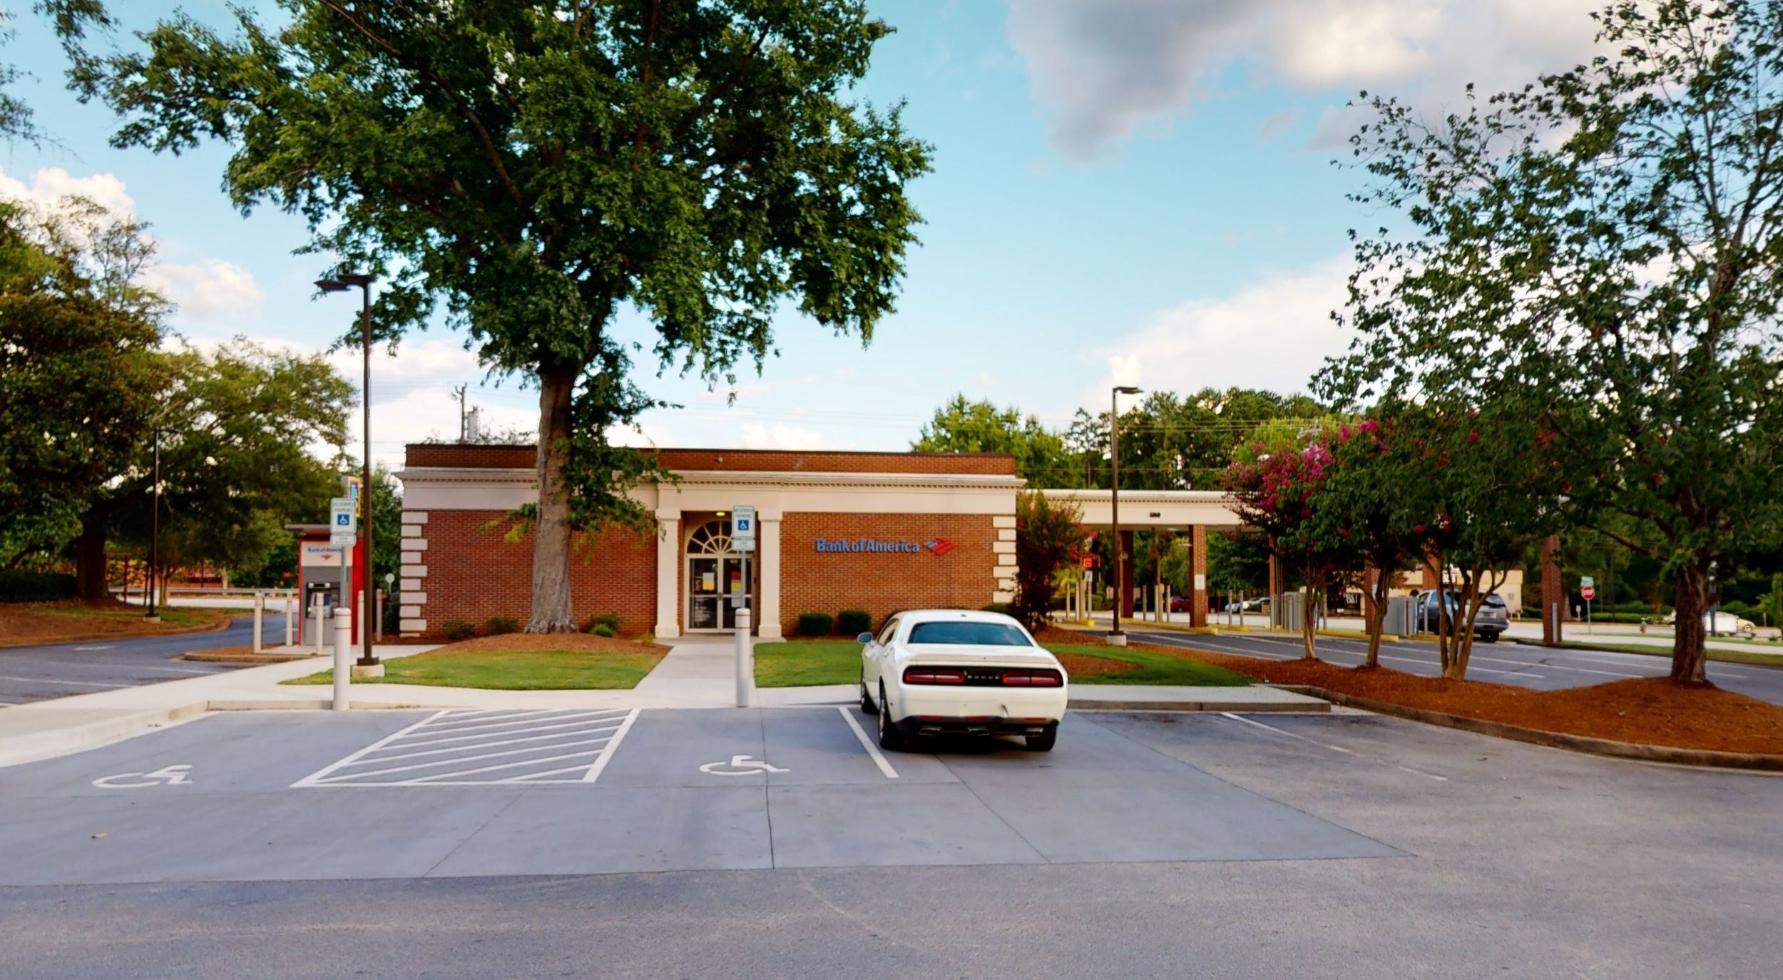 Bank of America financial center with drive-thru ATM and teller   1604 E Main St, Spartanburg, SC 29307